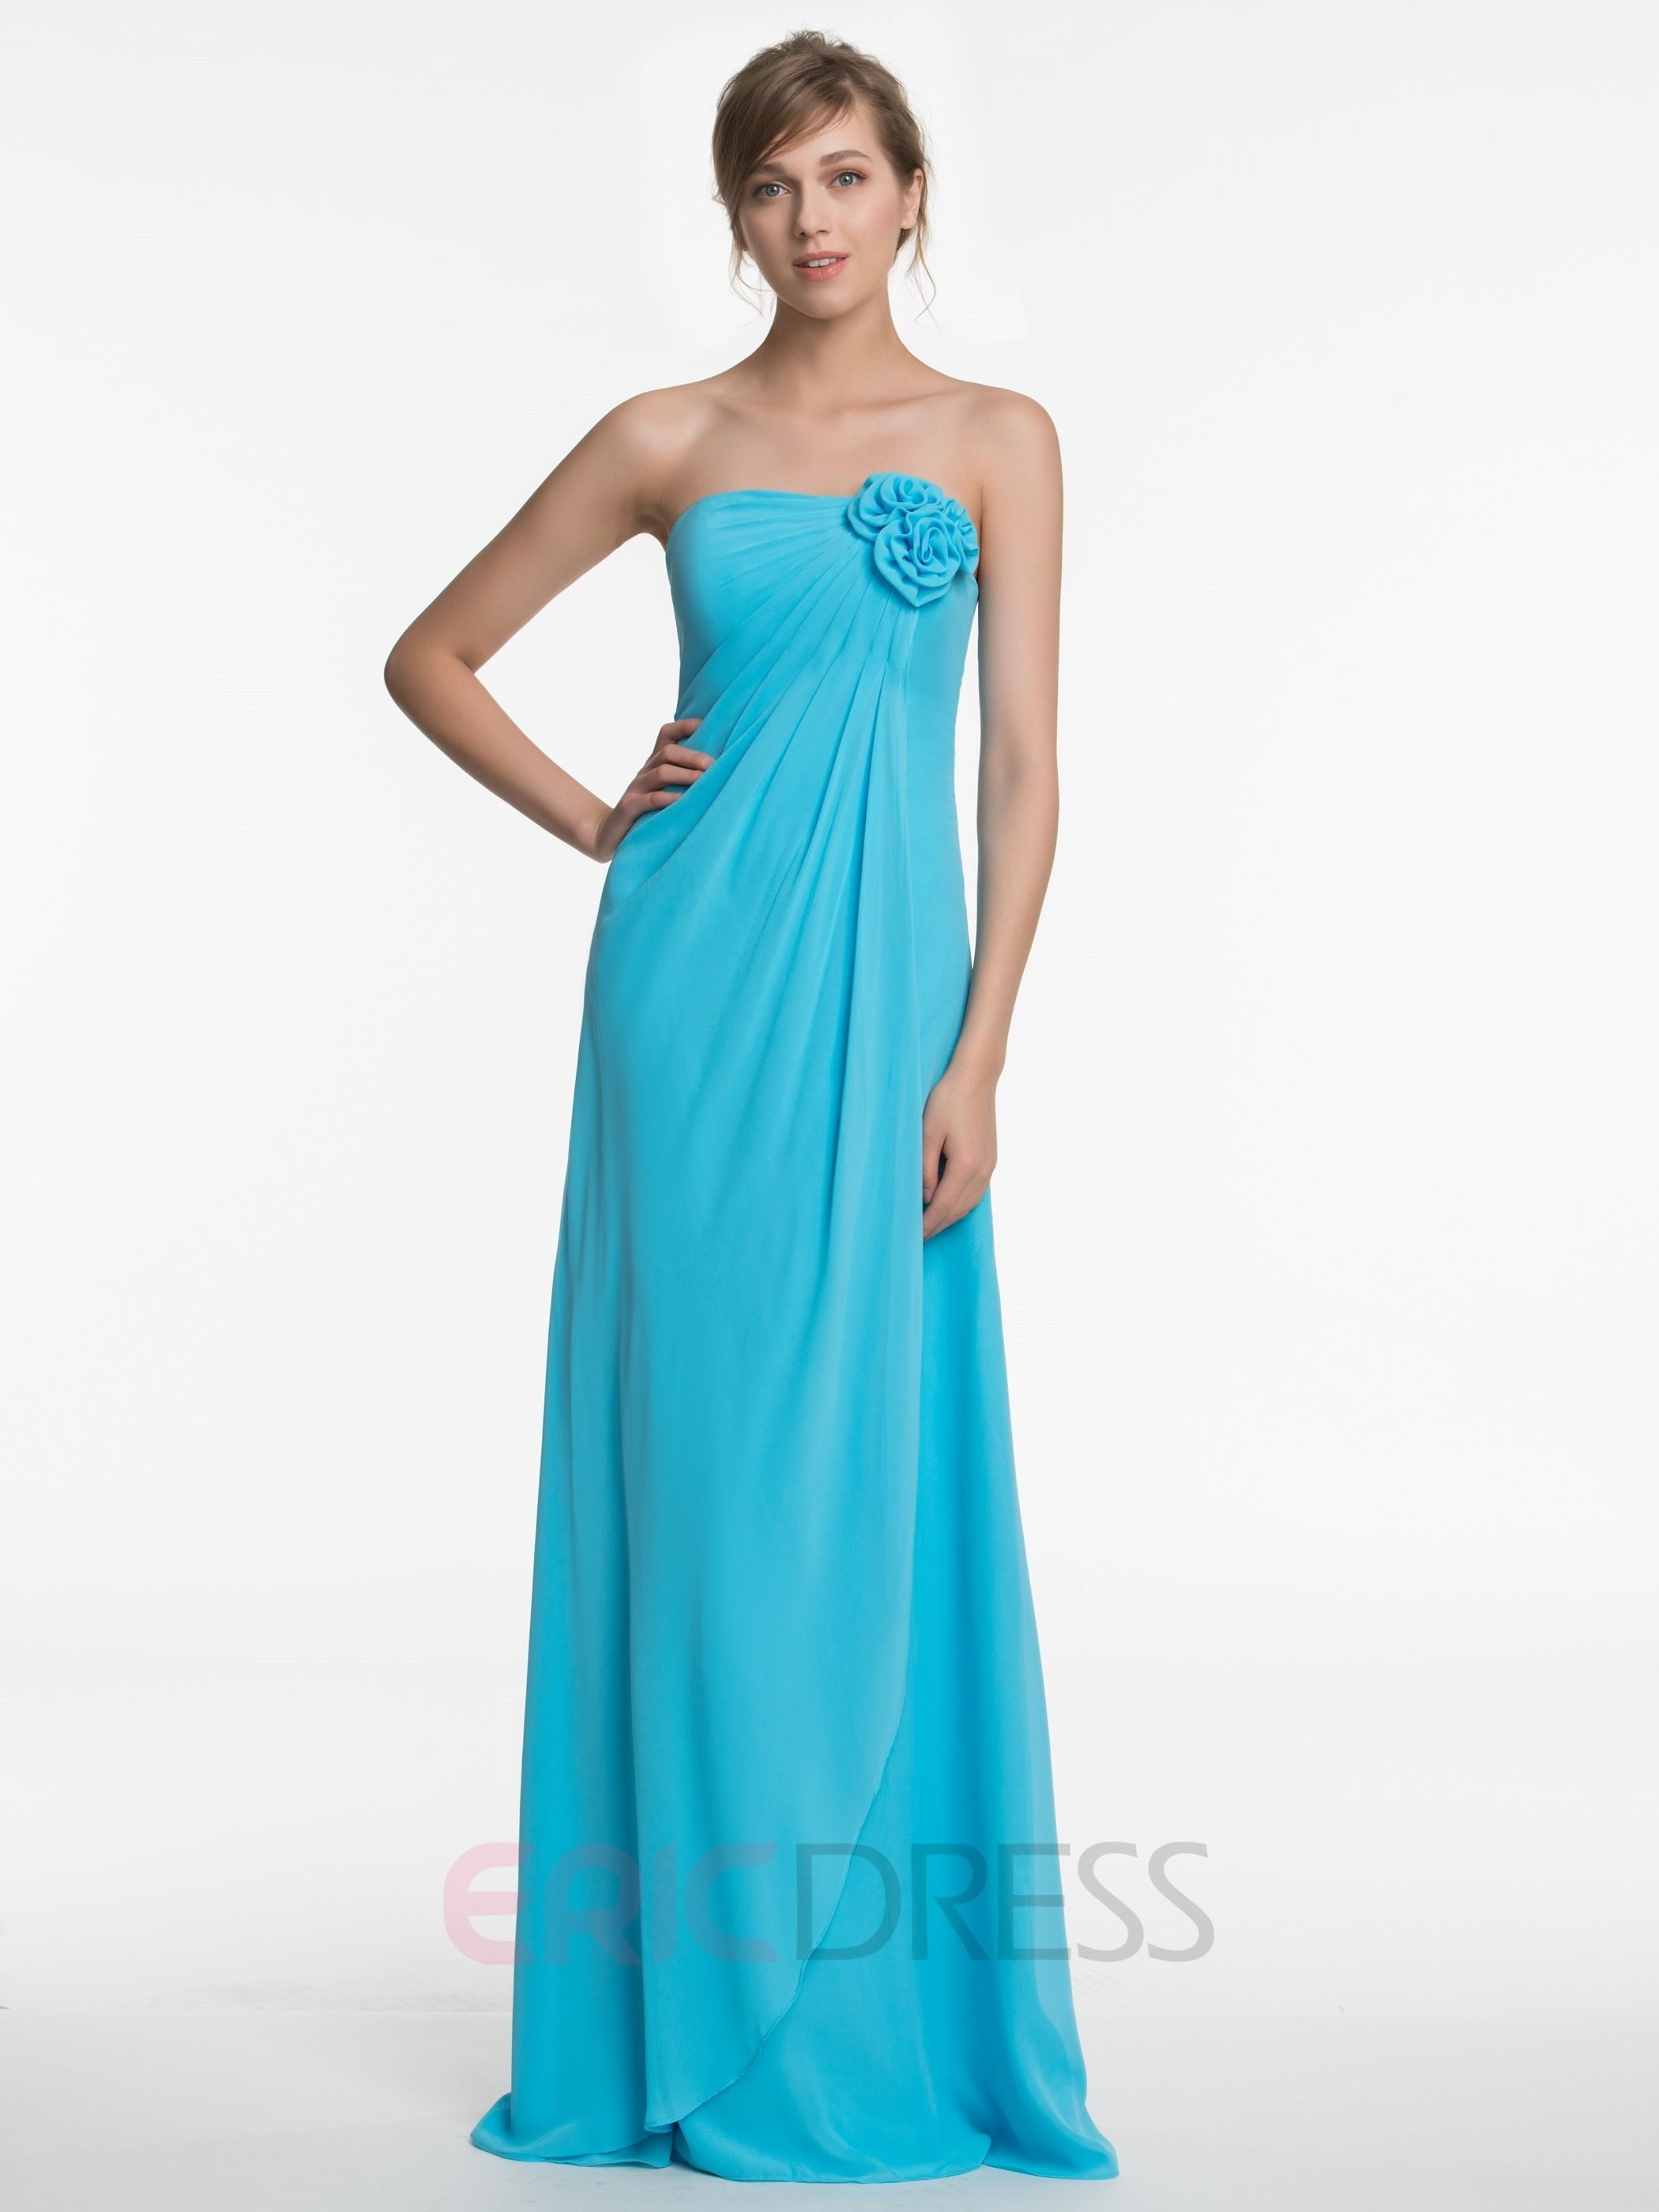 Beautiful Strapless A Line Chiffon Bridesmaid Dress | Pinterest ...